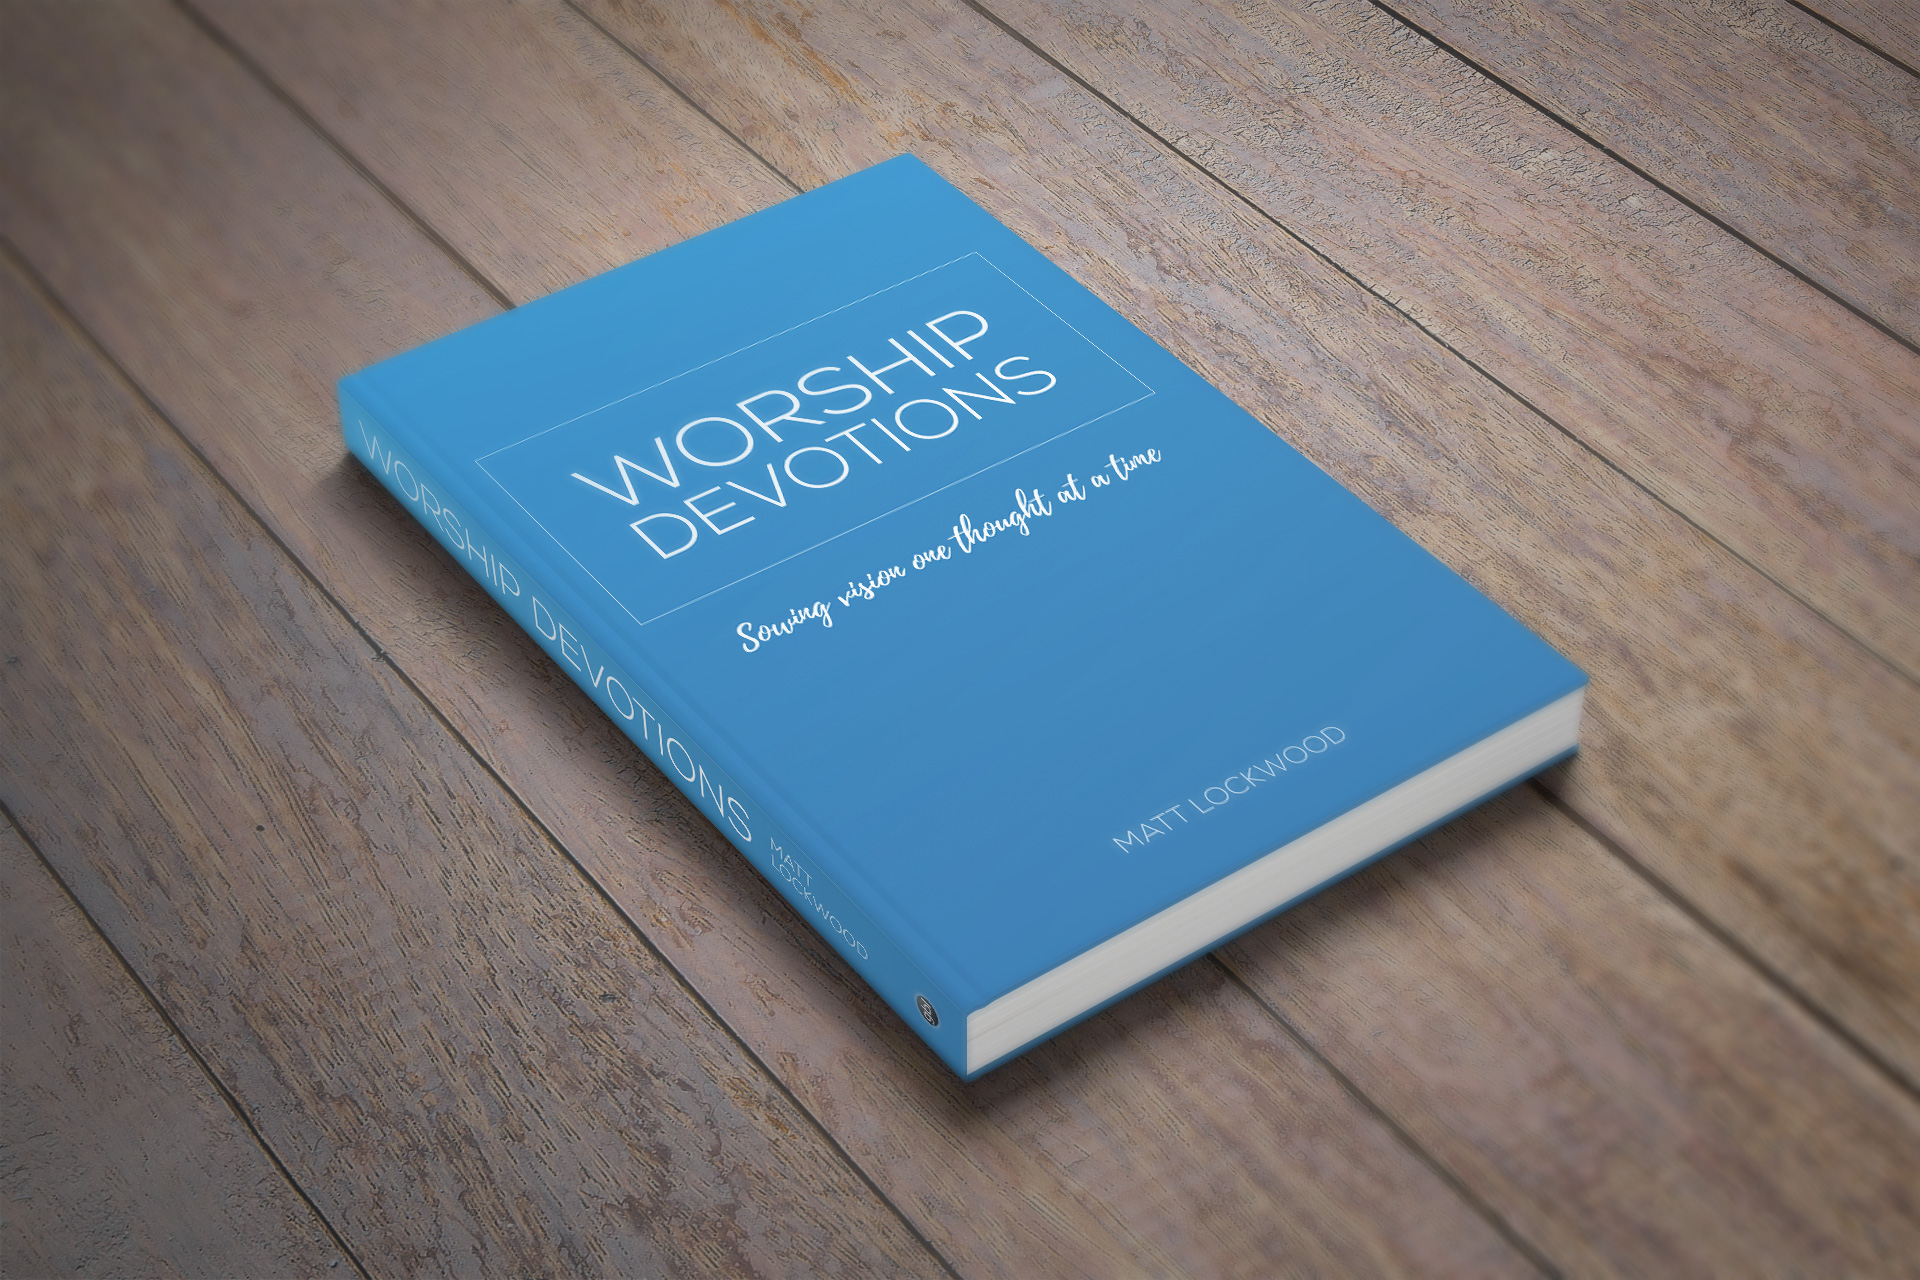 Worship Devotions book (mock up)